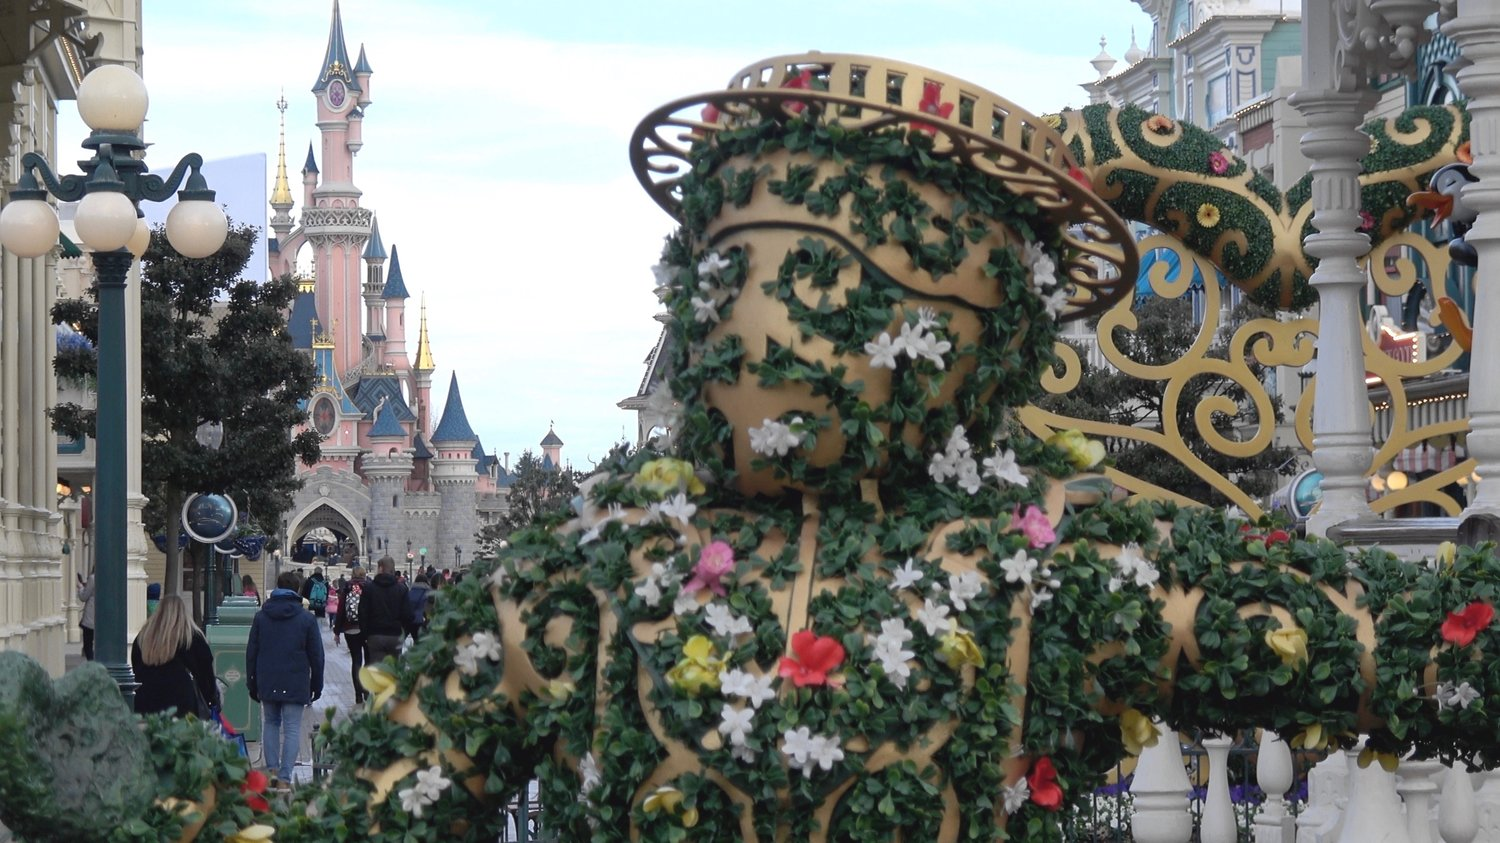 decorations and merchandise pirates and princesses festival 2018 at disneyland paris - When Does Disneyland Decorate For Christmas 2018